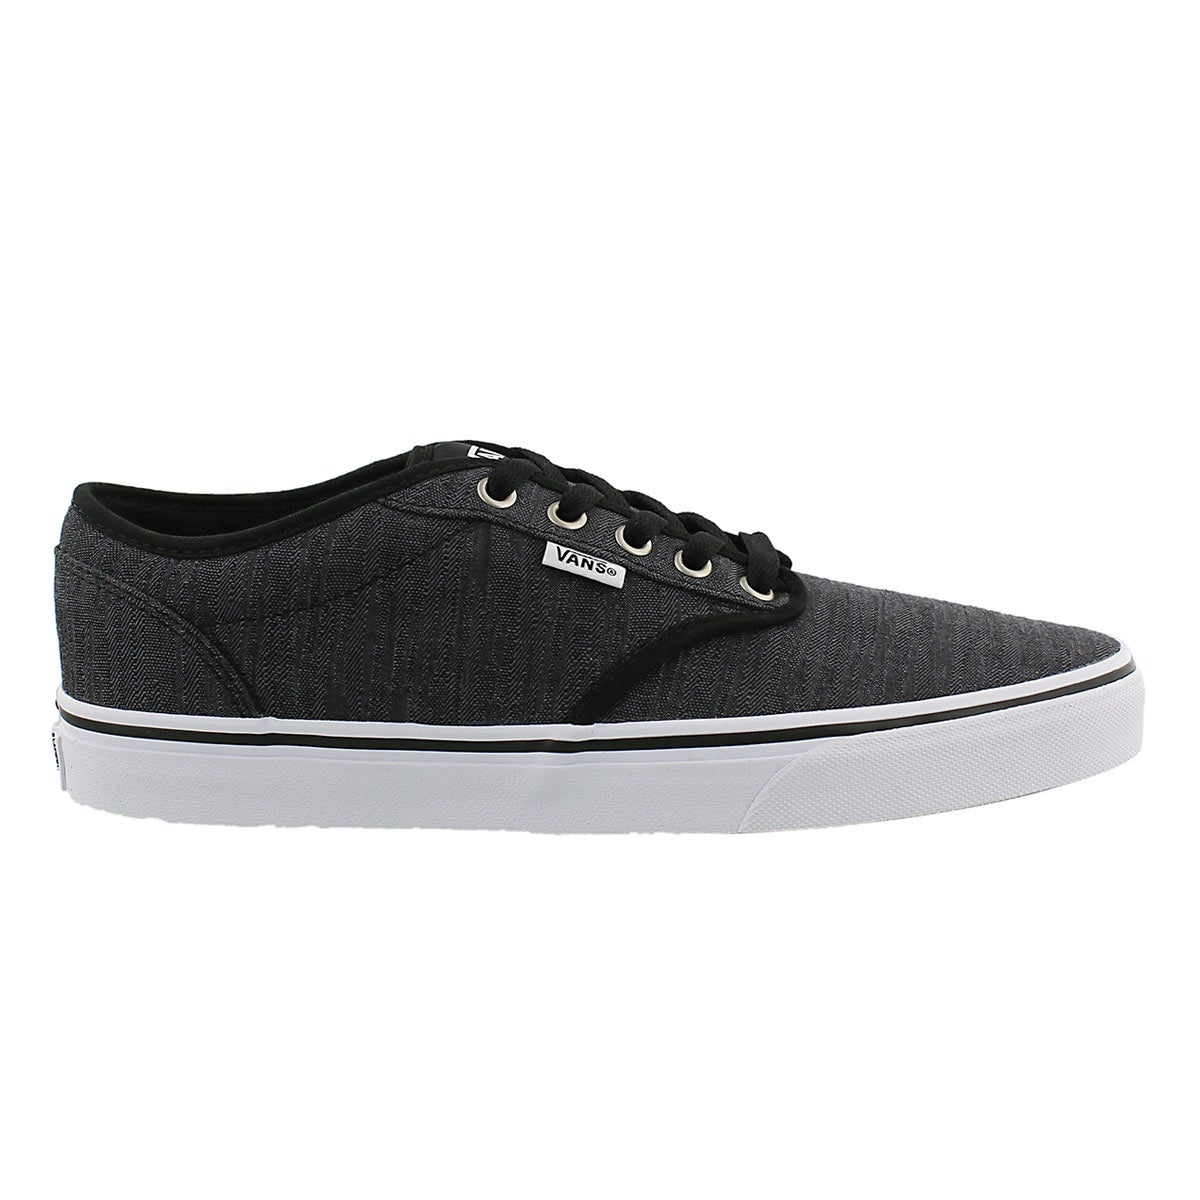 Mns Atwood blk distressed laceup sneaker